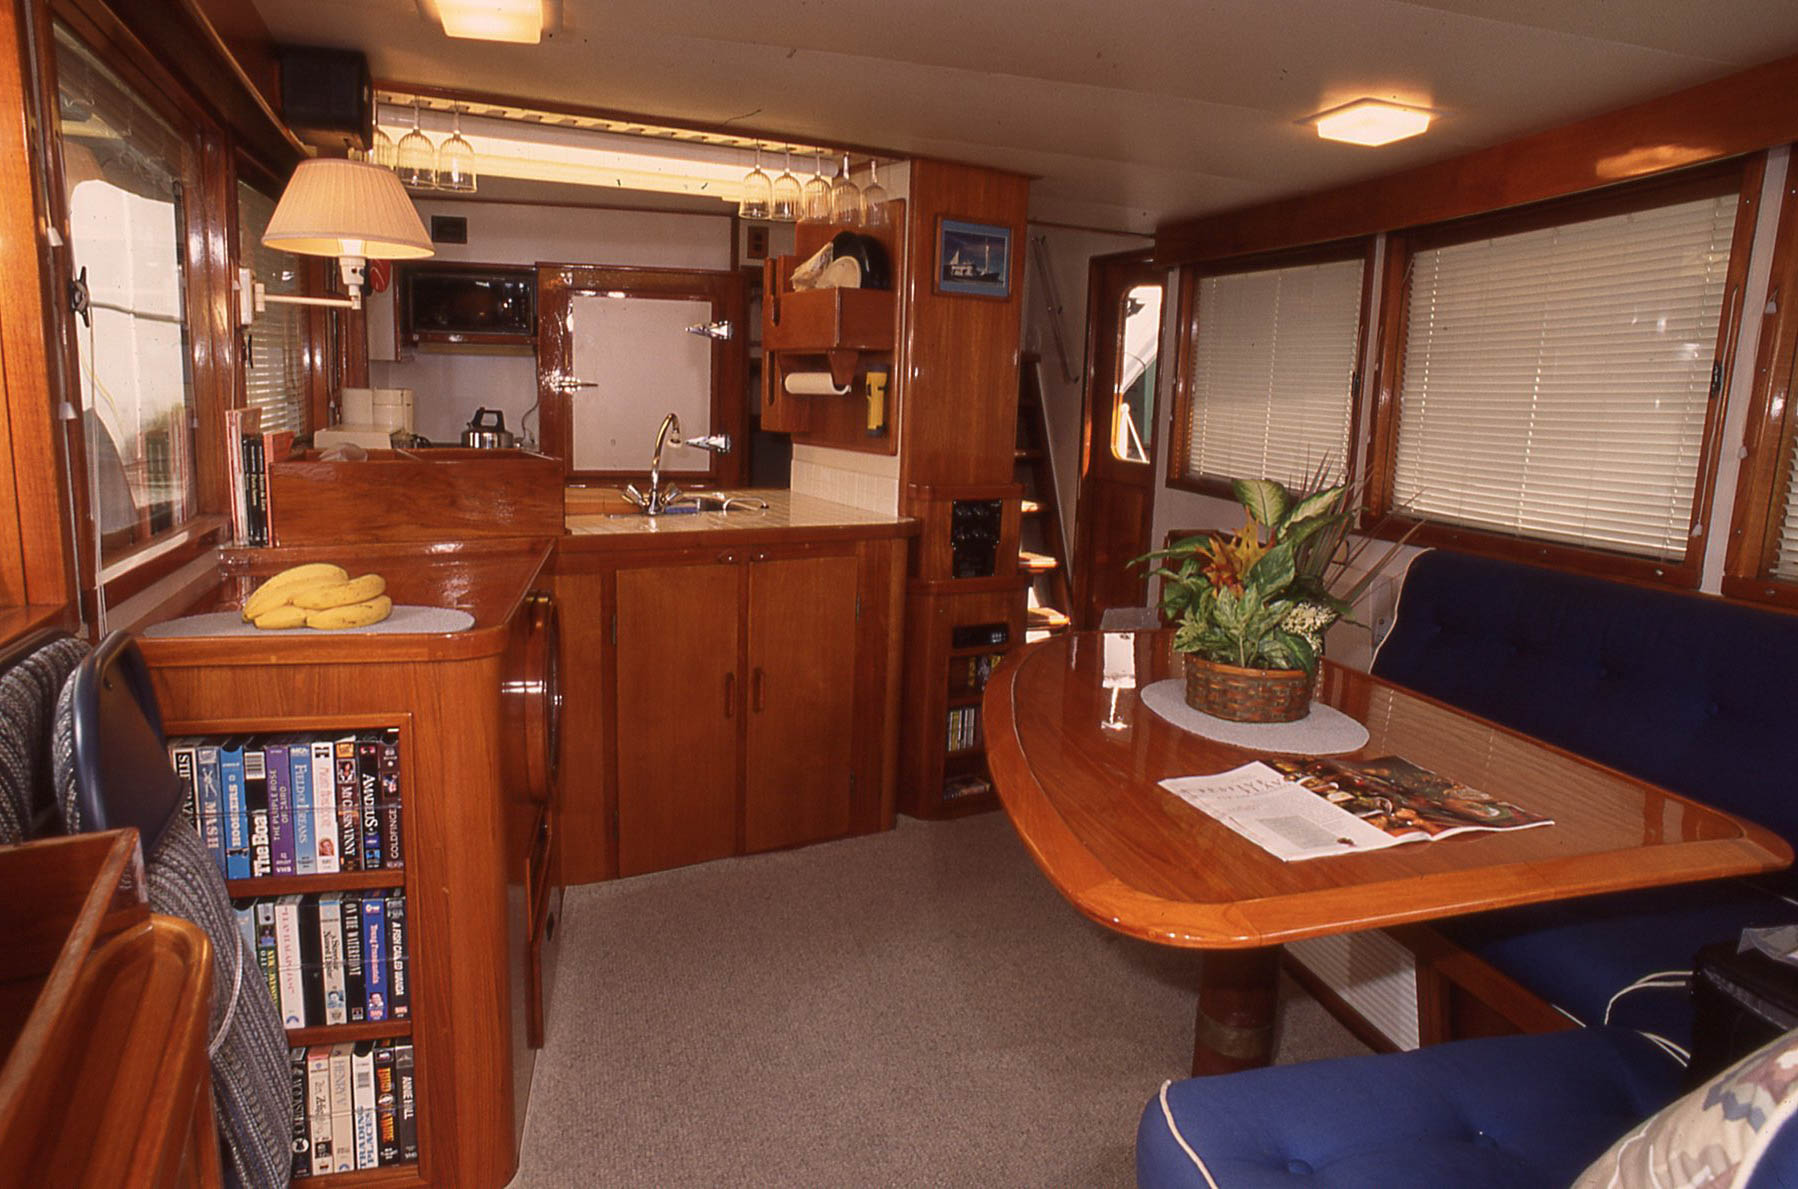 Seagoing saloon and galley. Note the tiny fiddle around the table, and how easy it is to move around this space with numerous places to hold on. This vintage Romsdal was designed to go to sea decades, and modernized by Captains Jerry and Wendy Taylor for cruising today.